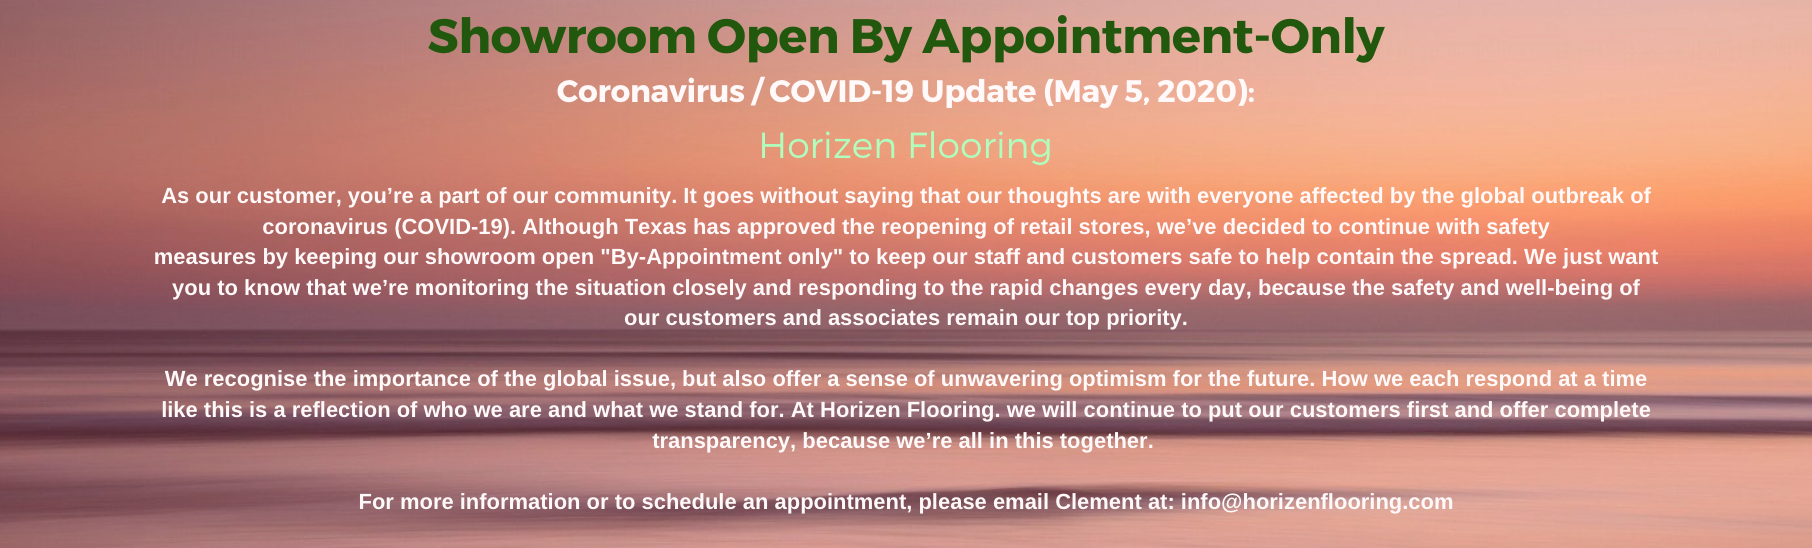 "Horizen Flooring Company Website Homepage describing Horizen Flooring showroom on North Lamar will be temporarily open ""By Appointment-only"" until further notice in response to COVID-19. For more information call 512-806-9434"